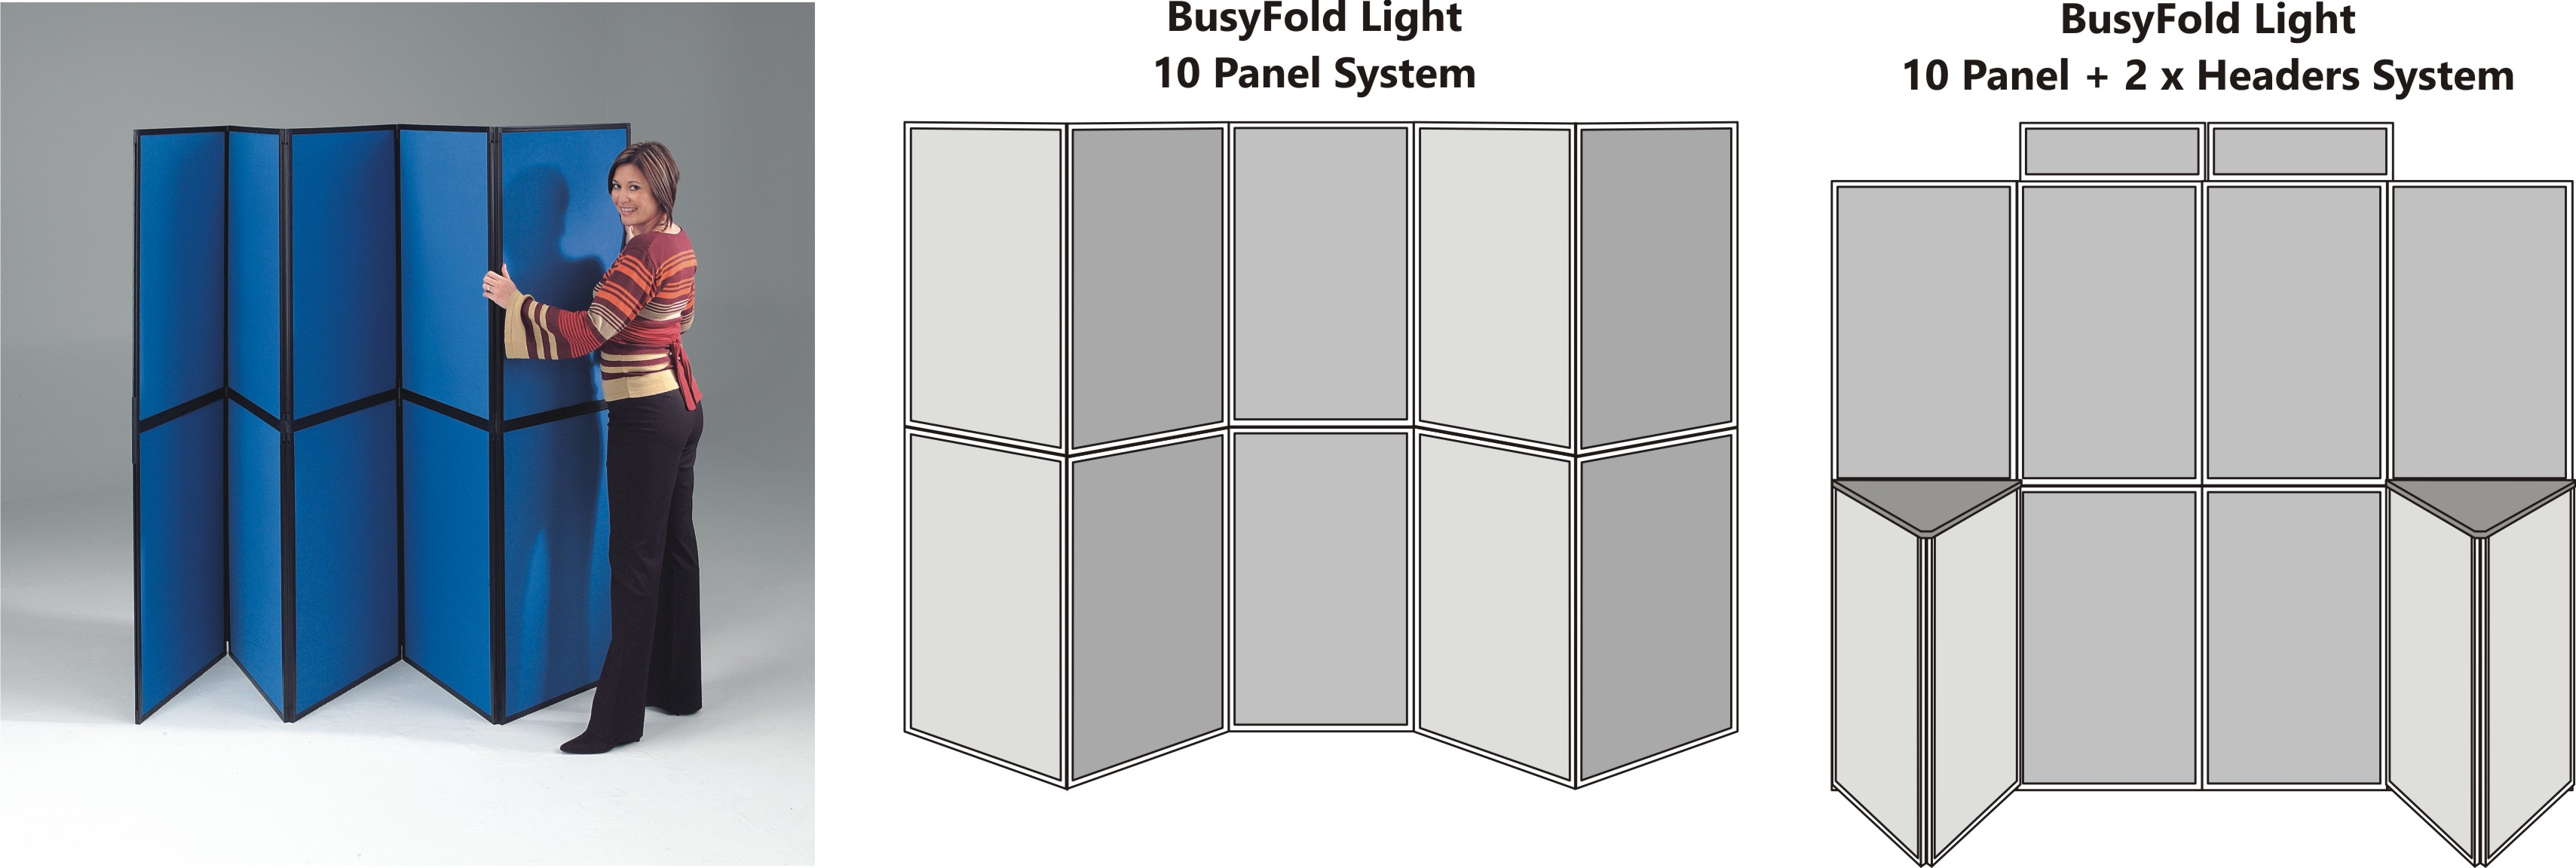 BusyFold Light 10 Panel Display System